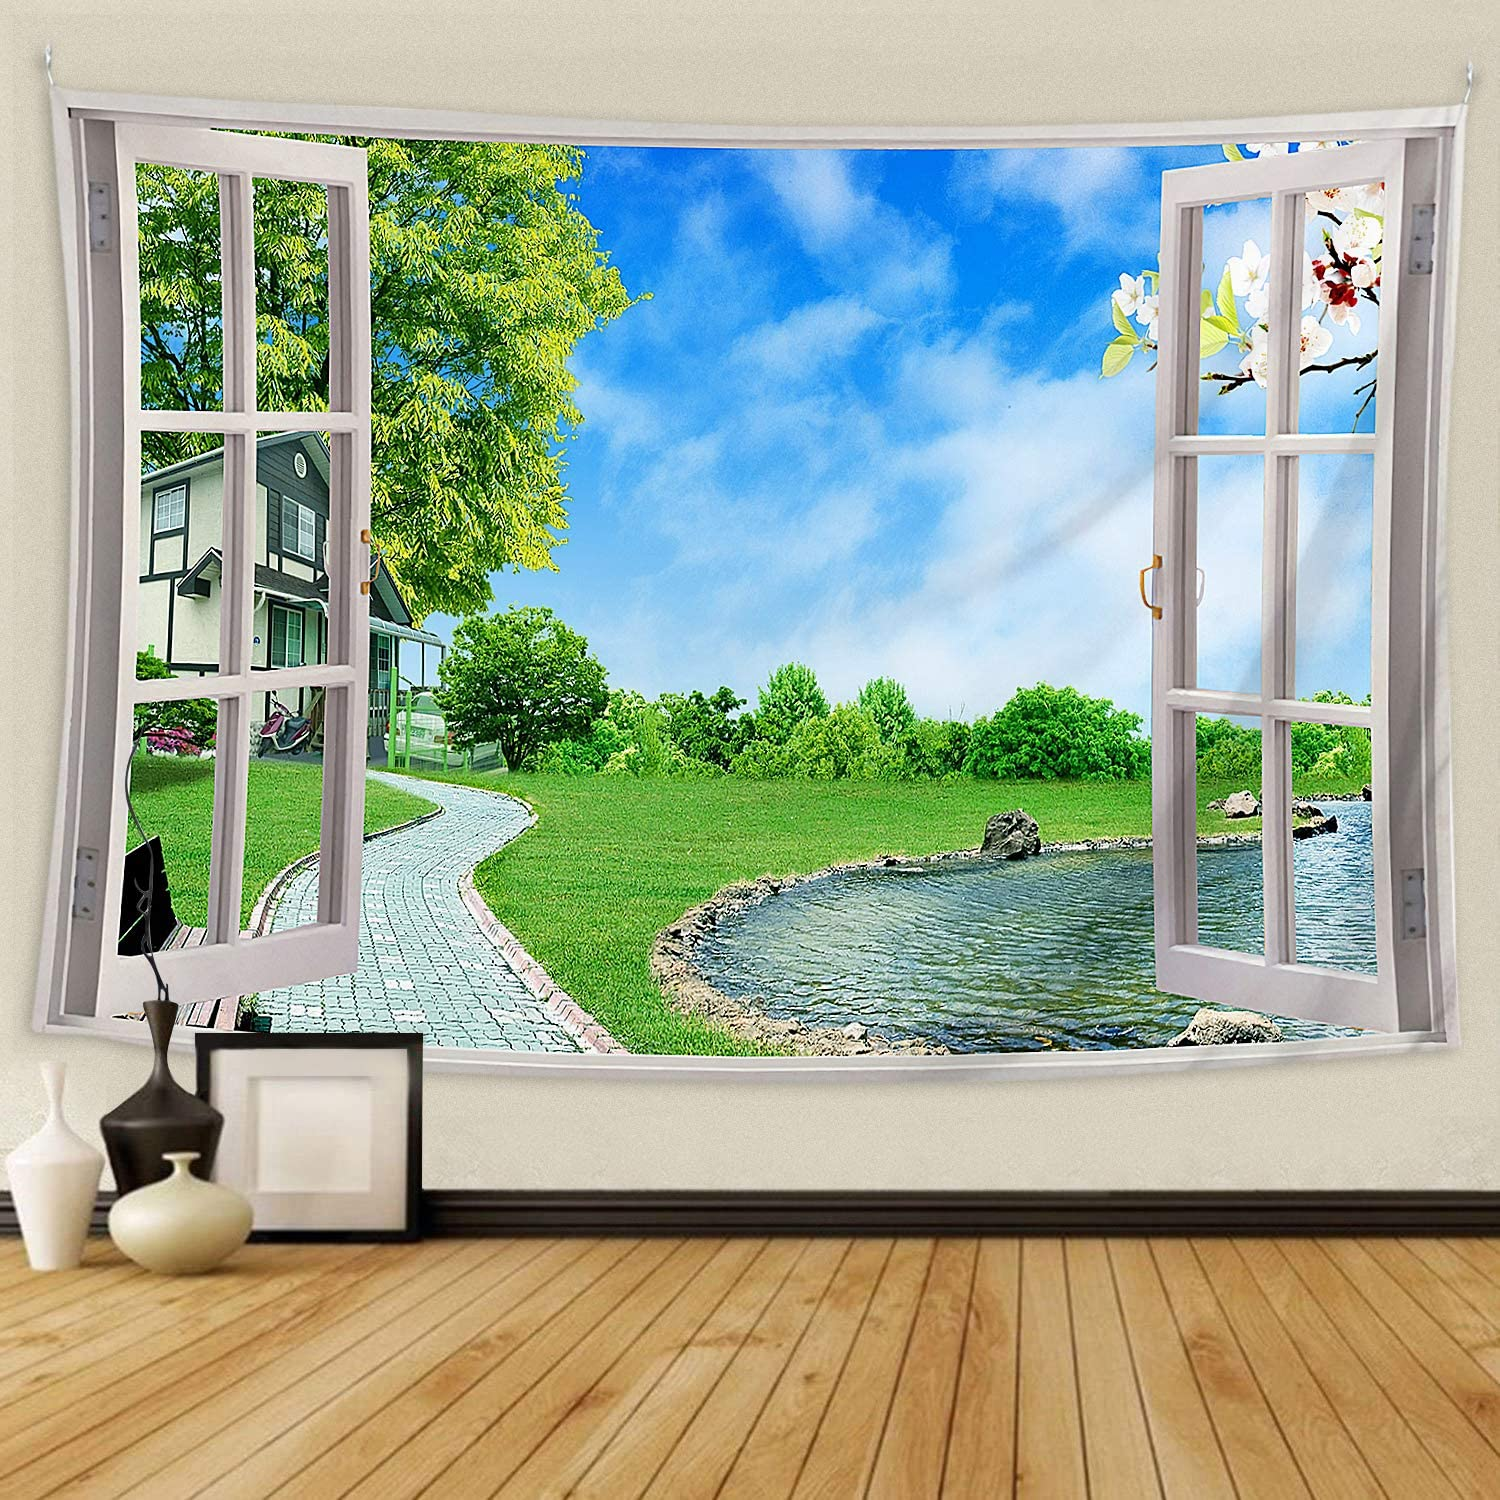 BOOPBEEP Bedroom Tapestry Wall Hanging Nature Landscape Windows Wall Tapestries with Soft Comfort/ No-fading/ Lightweight/ HD Prints/ Color Vibrant Use for Dorm, Livingroom Decor (90x60IN, Nature)